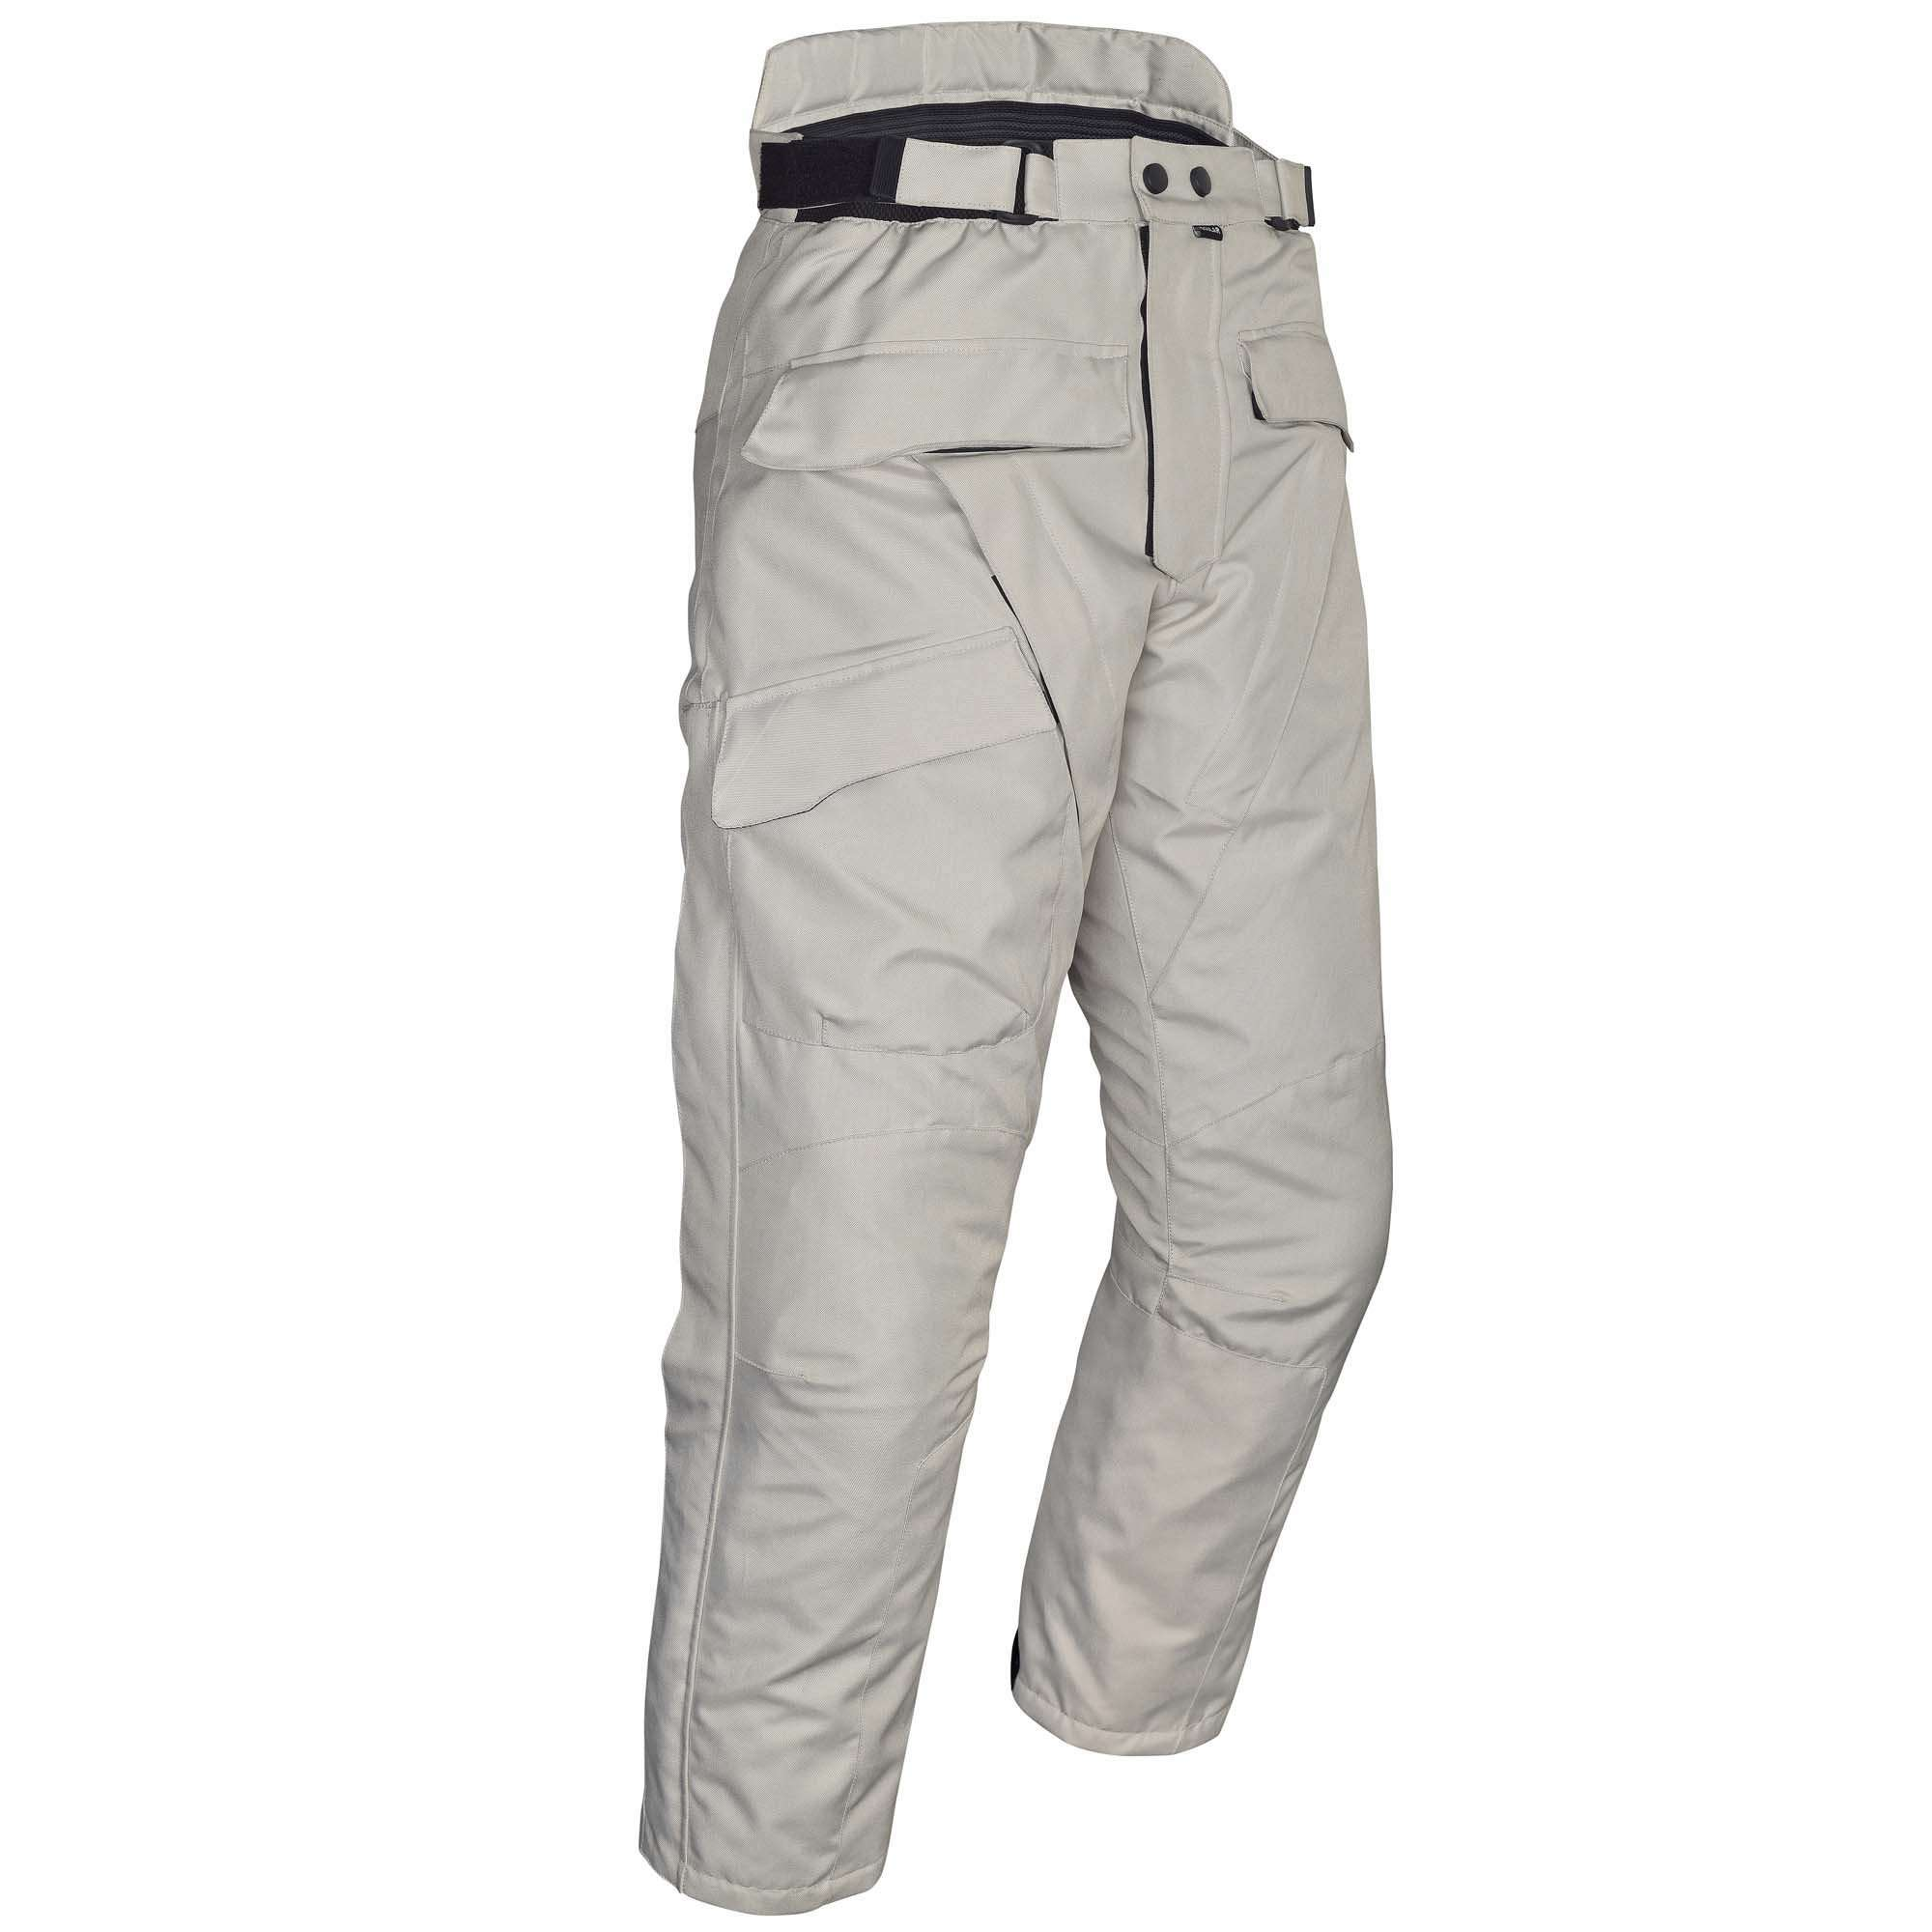 Mens-Motorcycle-Waterproof-Over-Pants-Gray